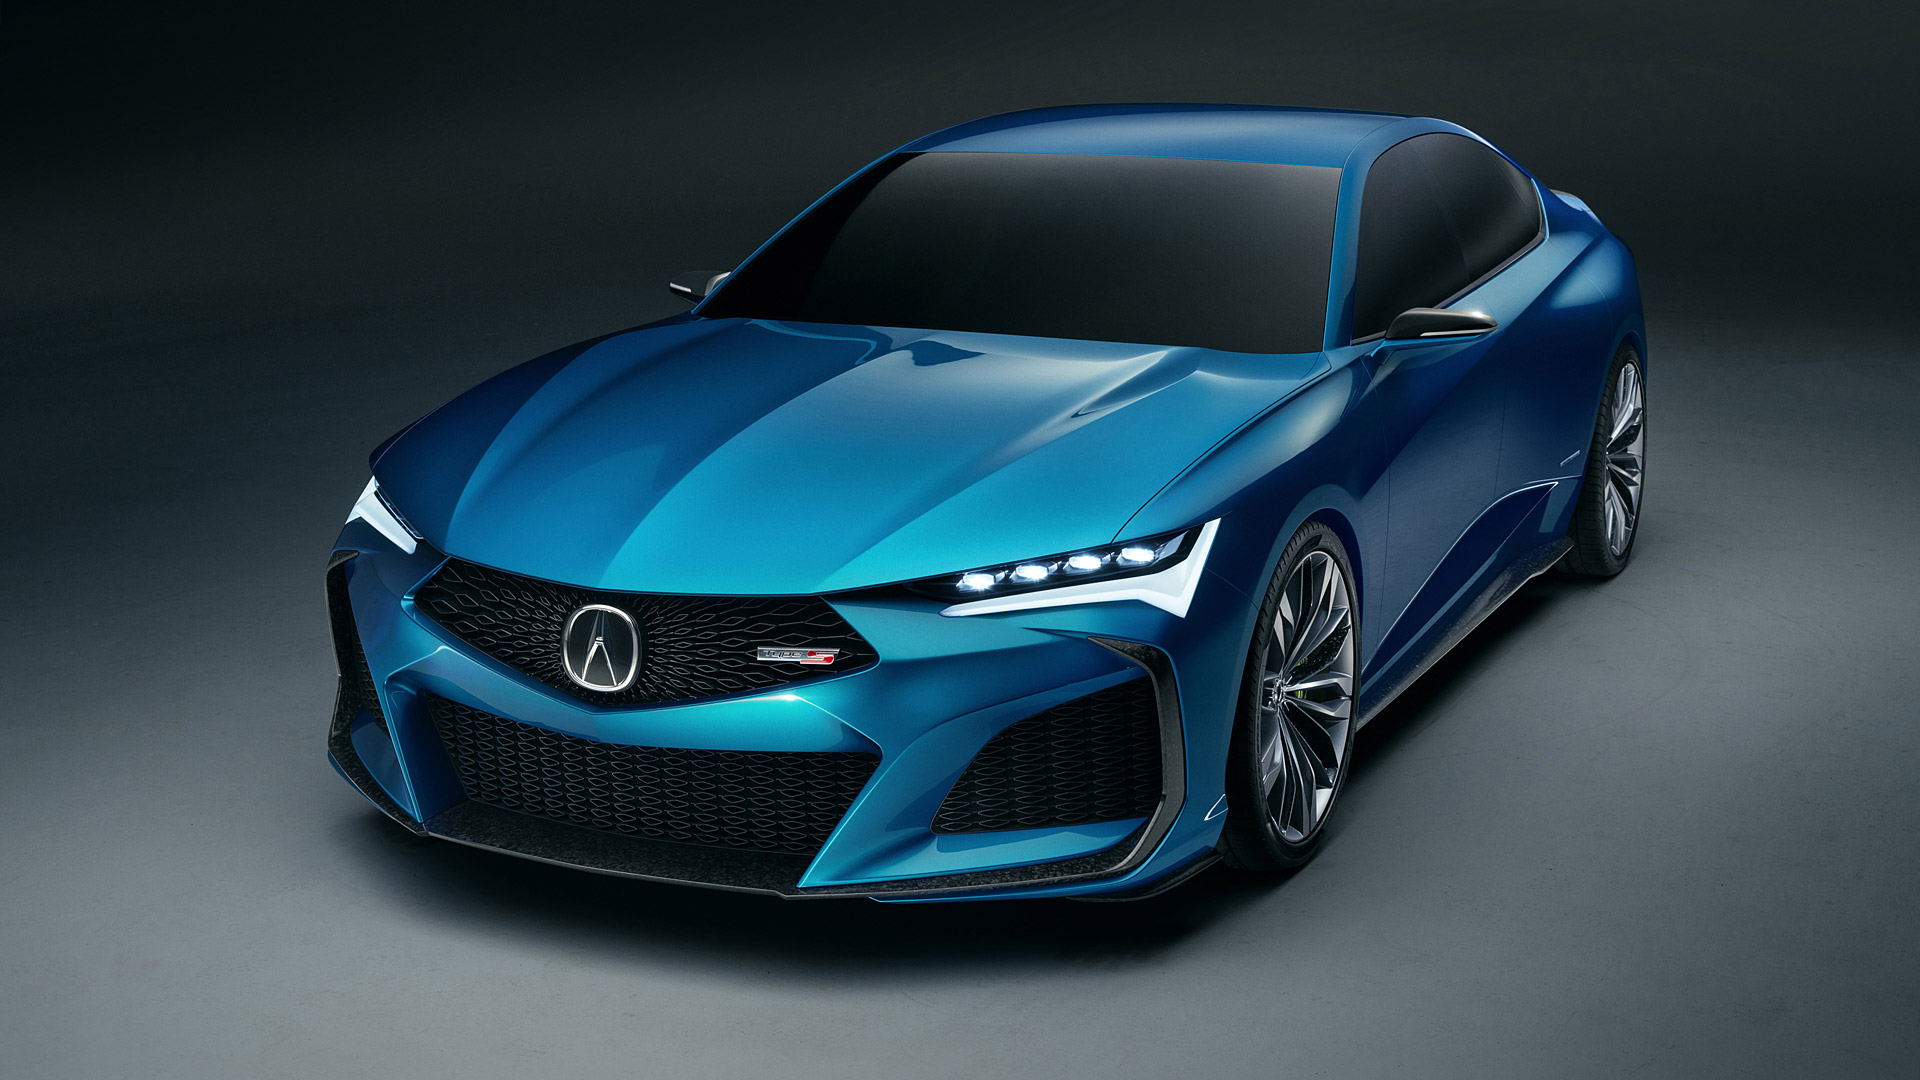 2019 Acura Type S Concept Wallpapers Specs Videos   4K HD 1920x1080